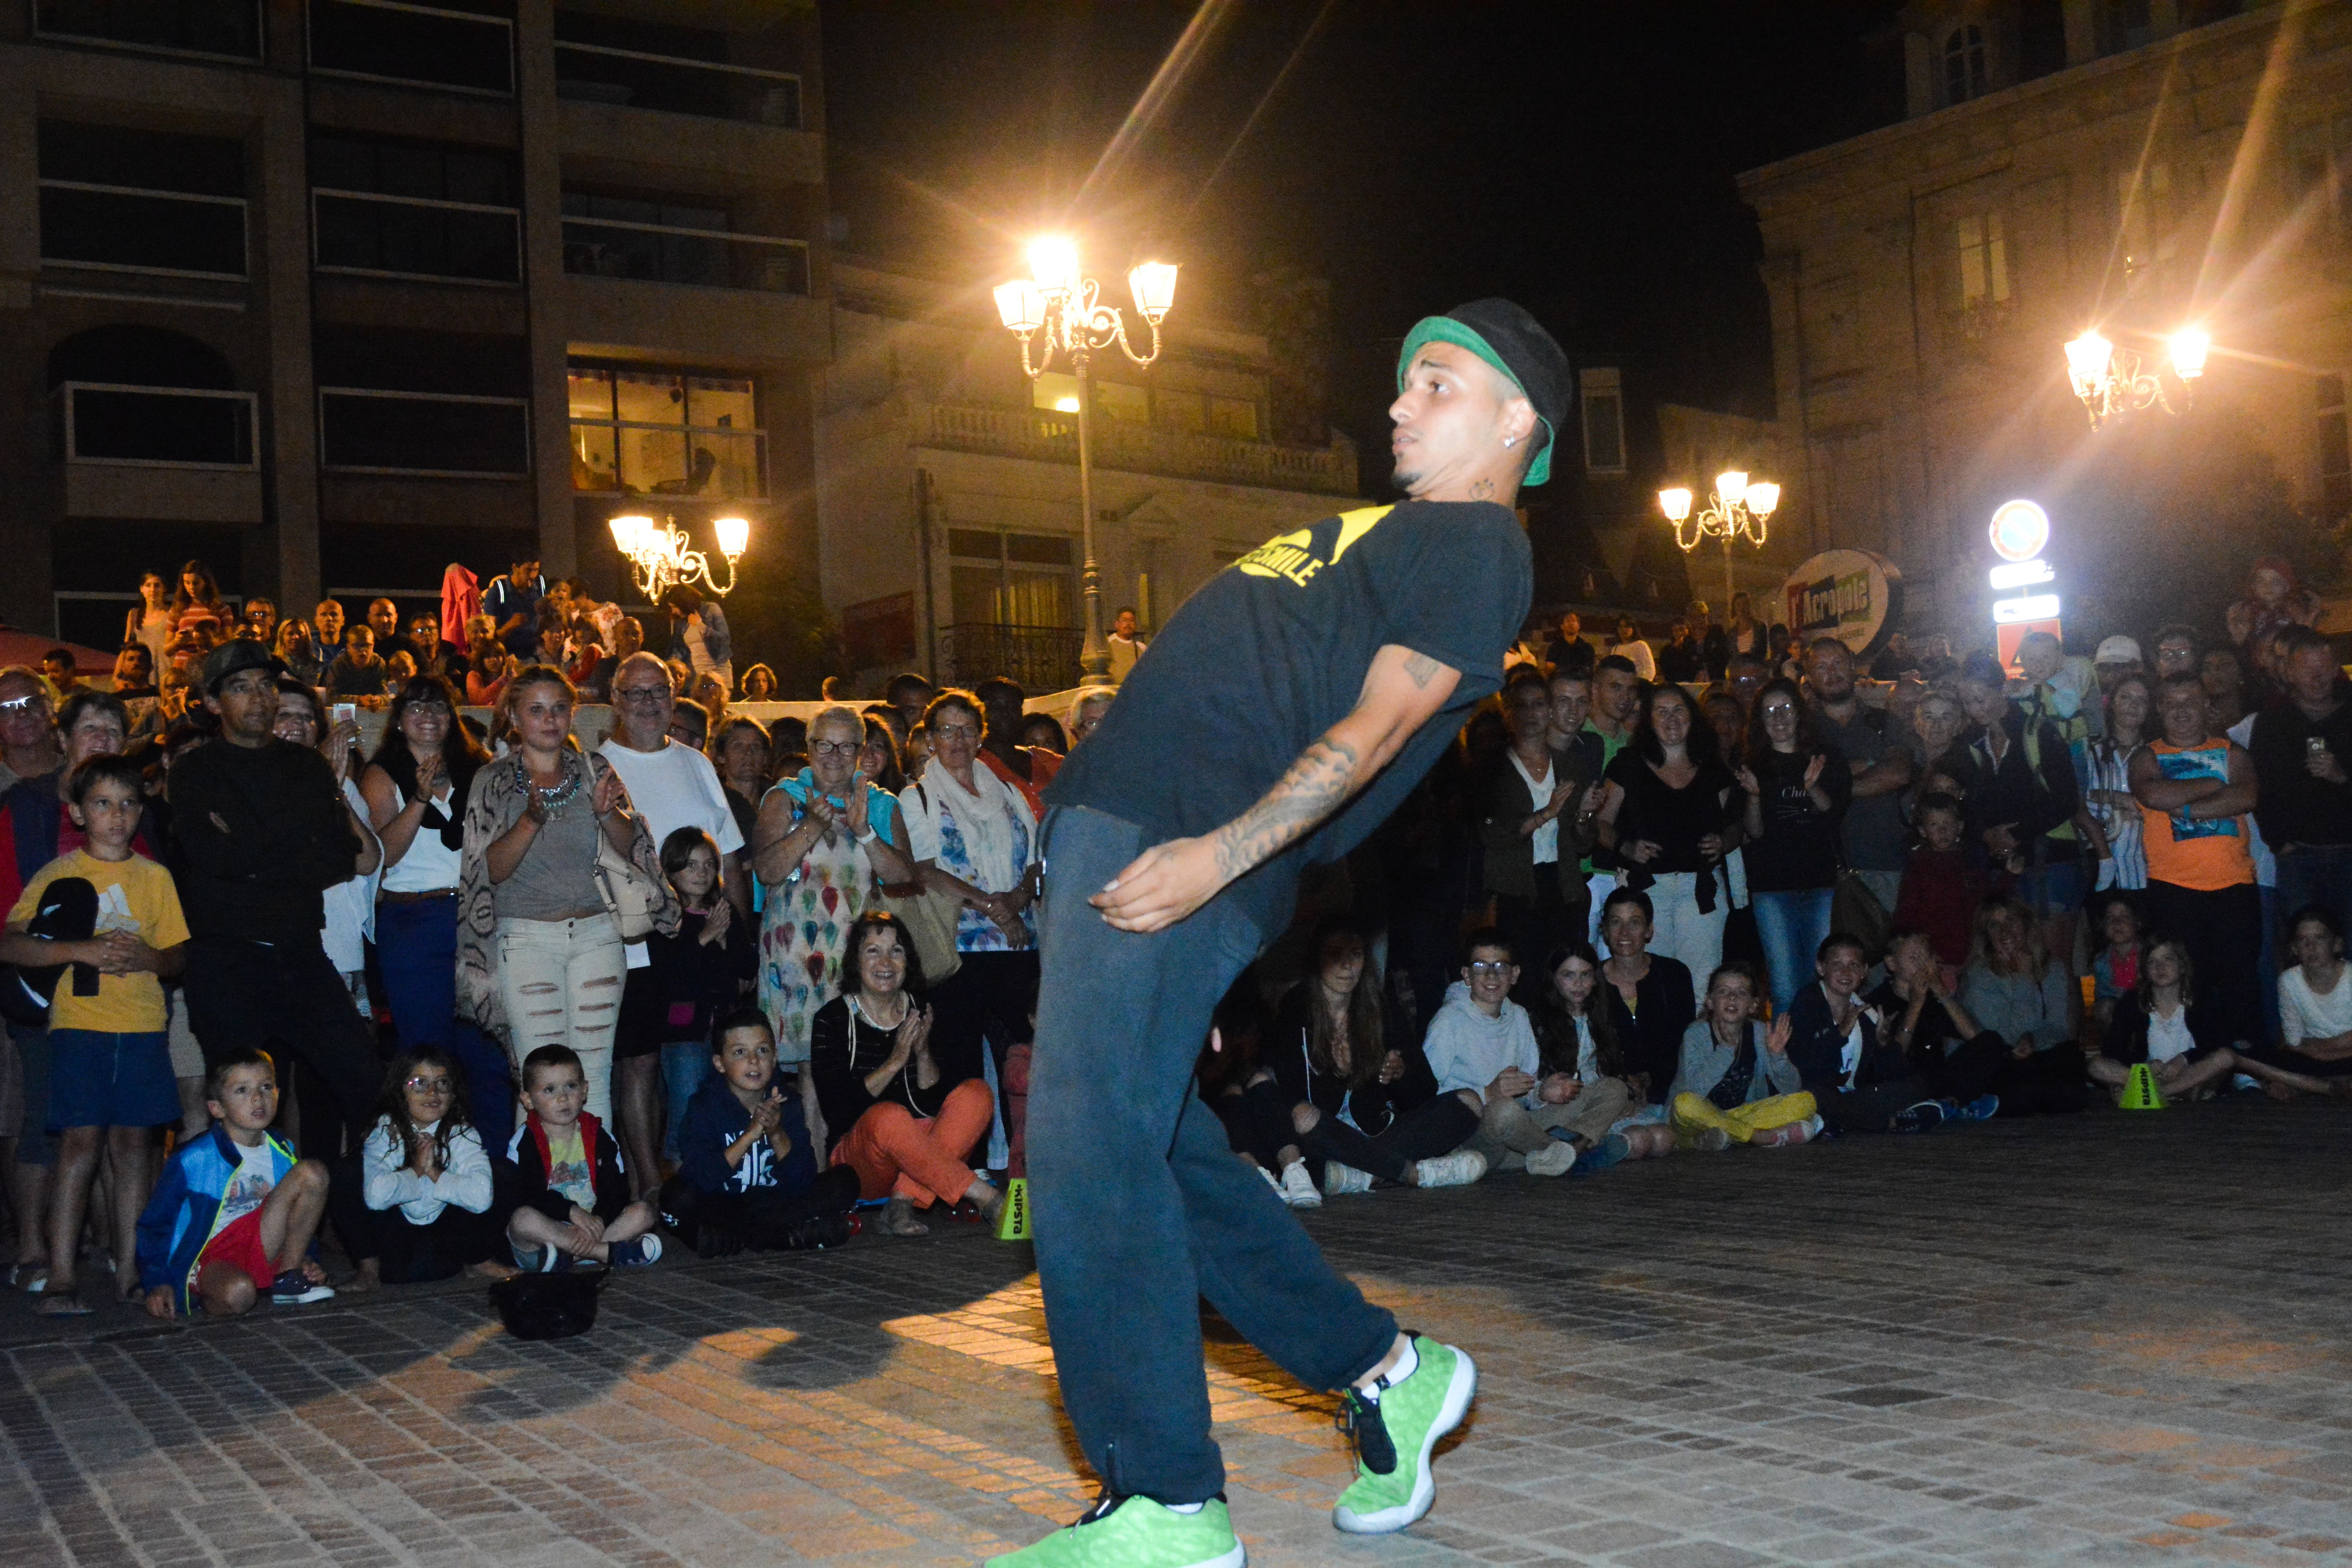 spectacle hiphop festival - Streetsmile